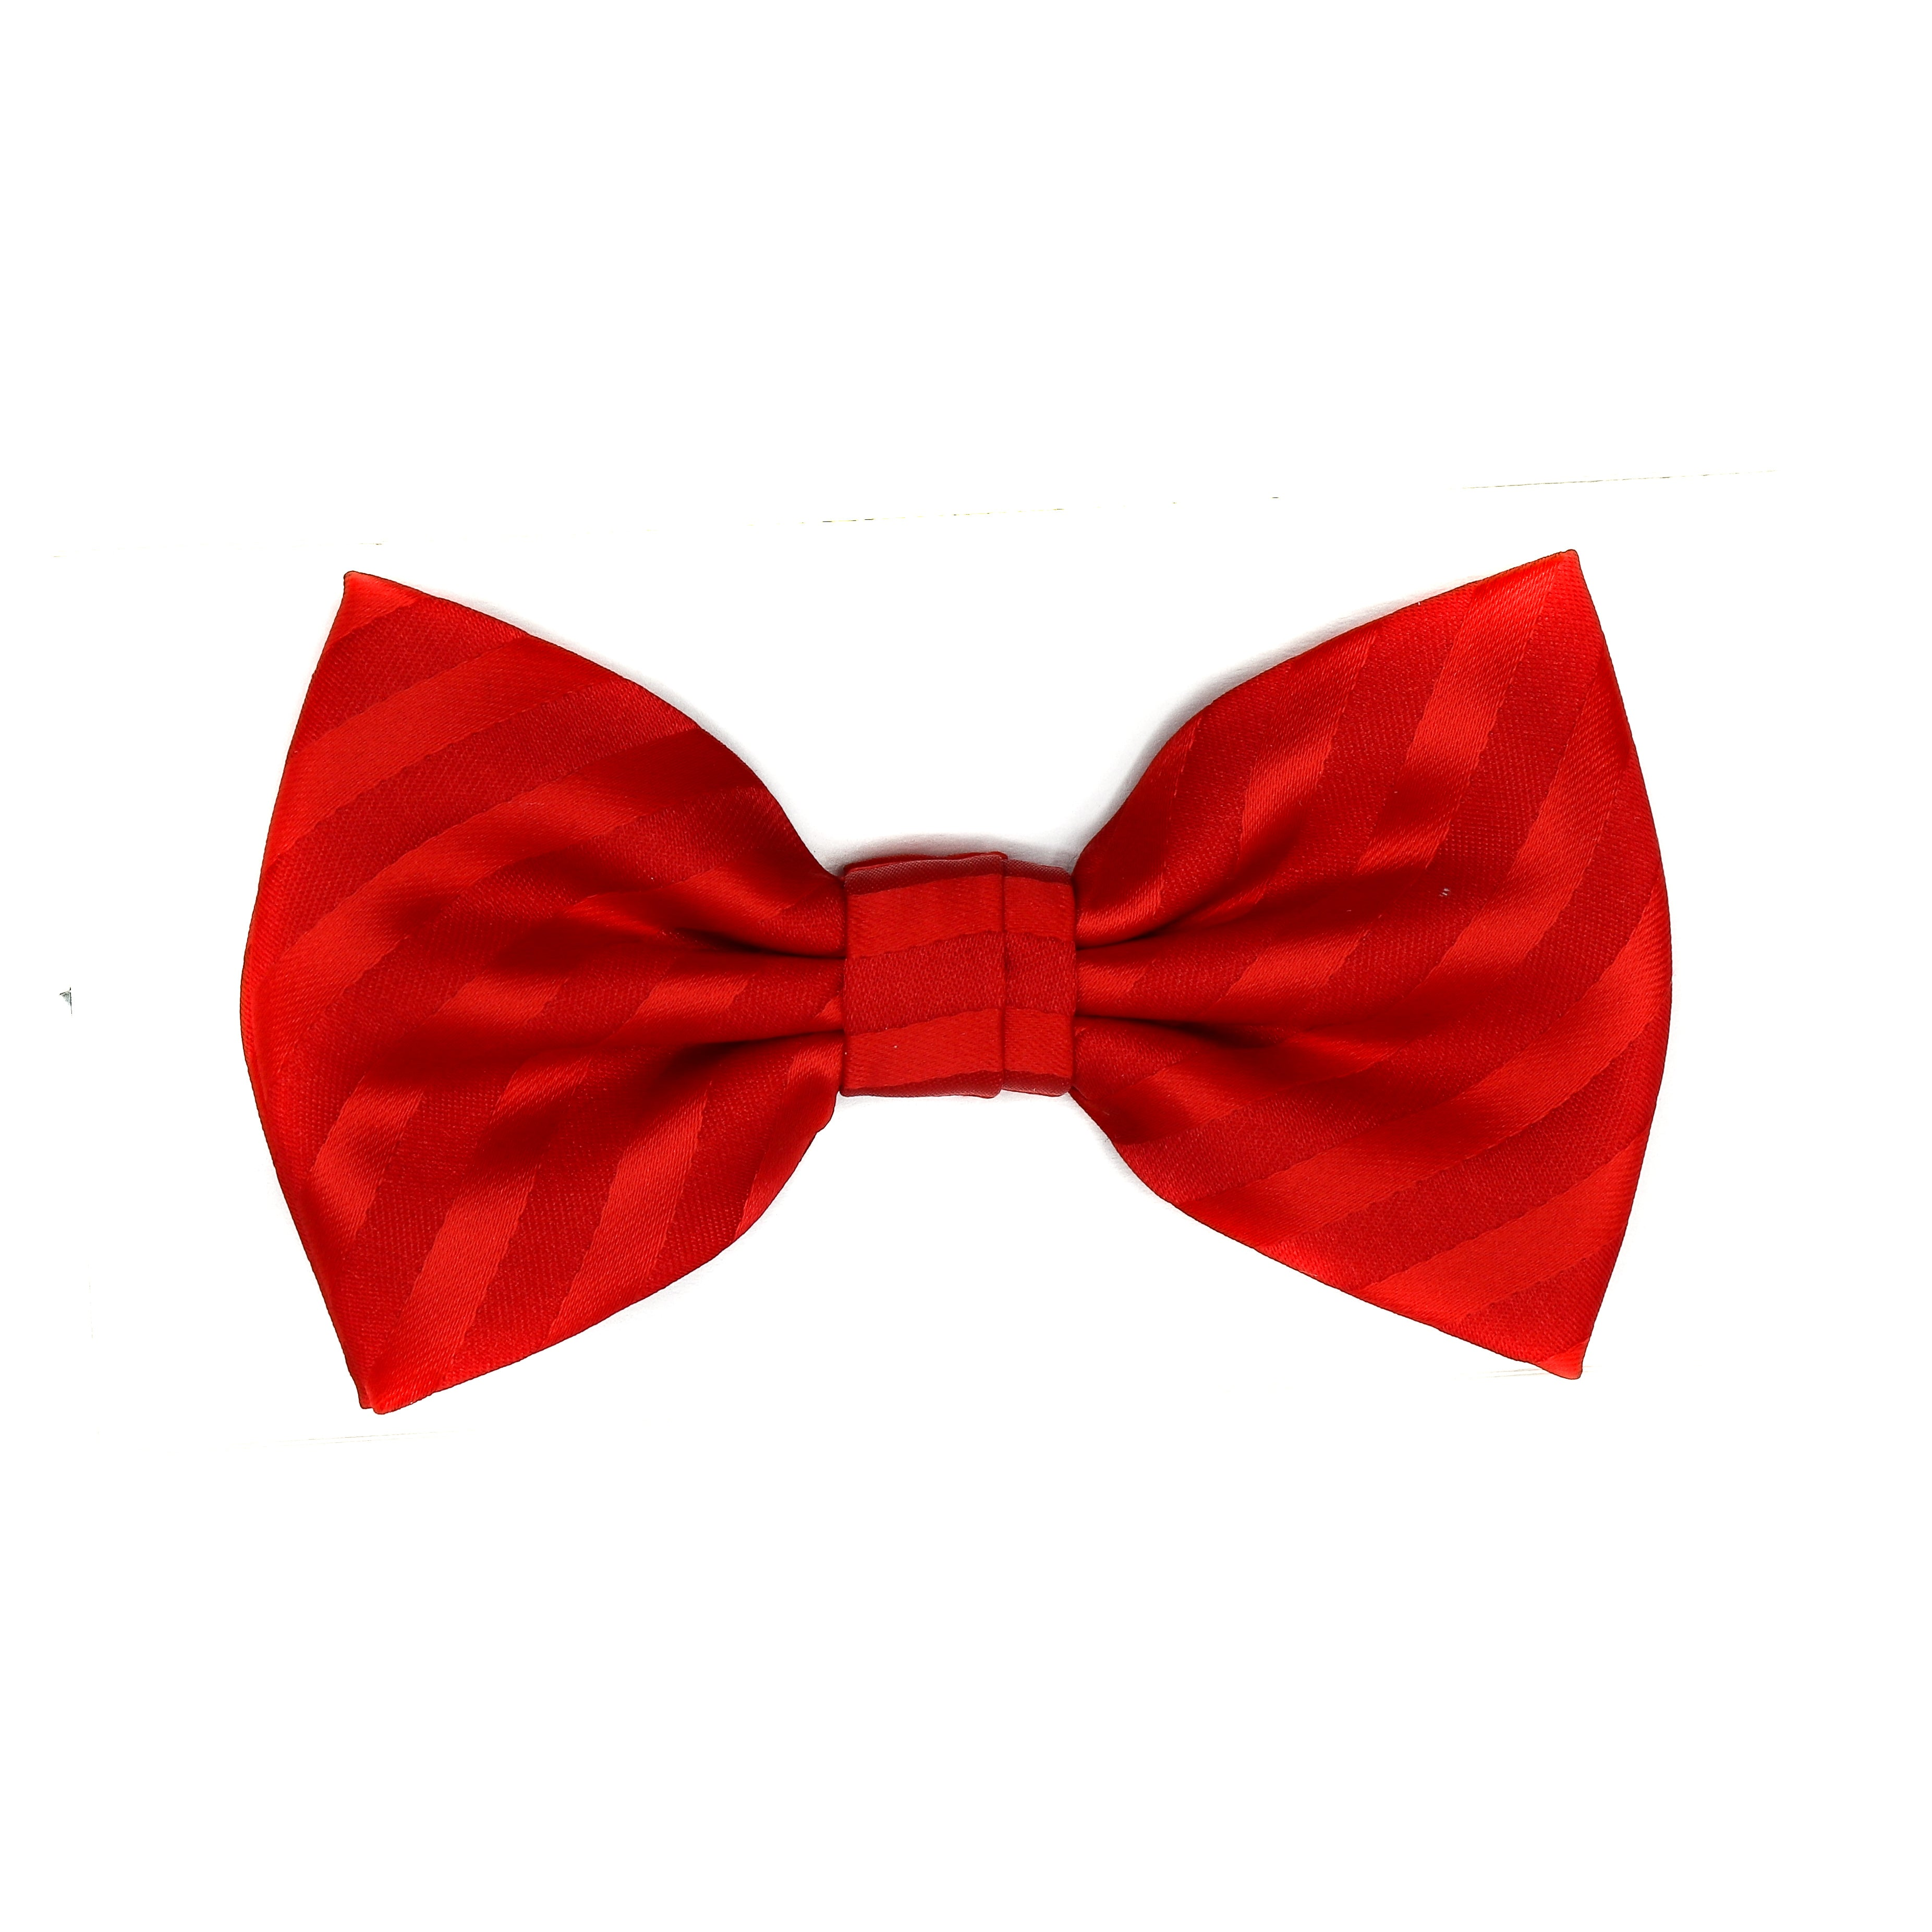 The Ultimate WillPower Bow Tie